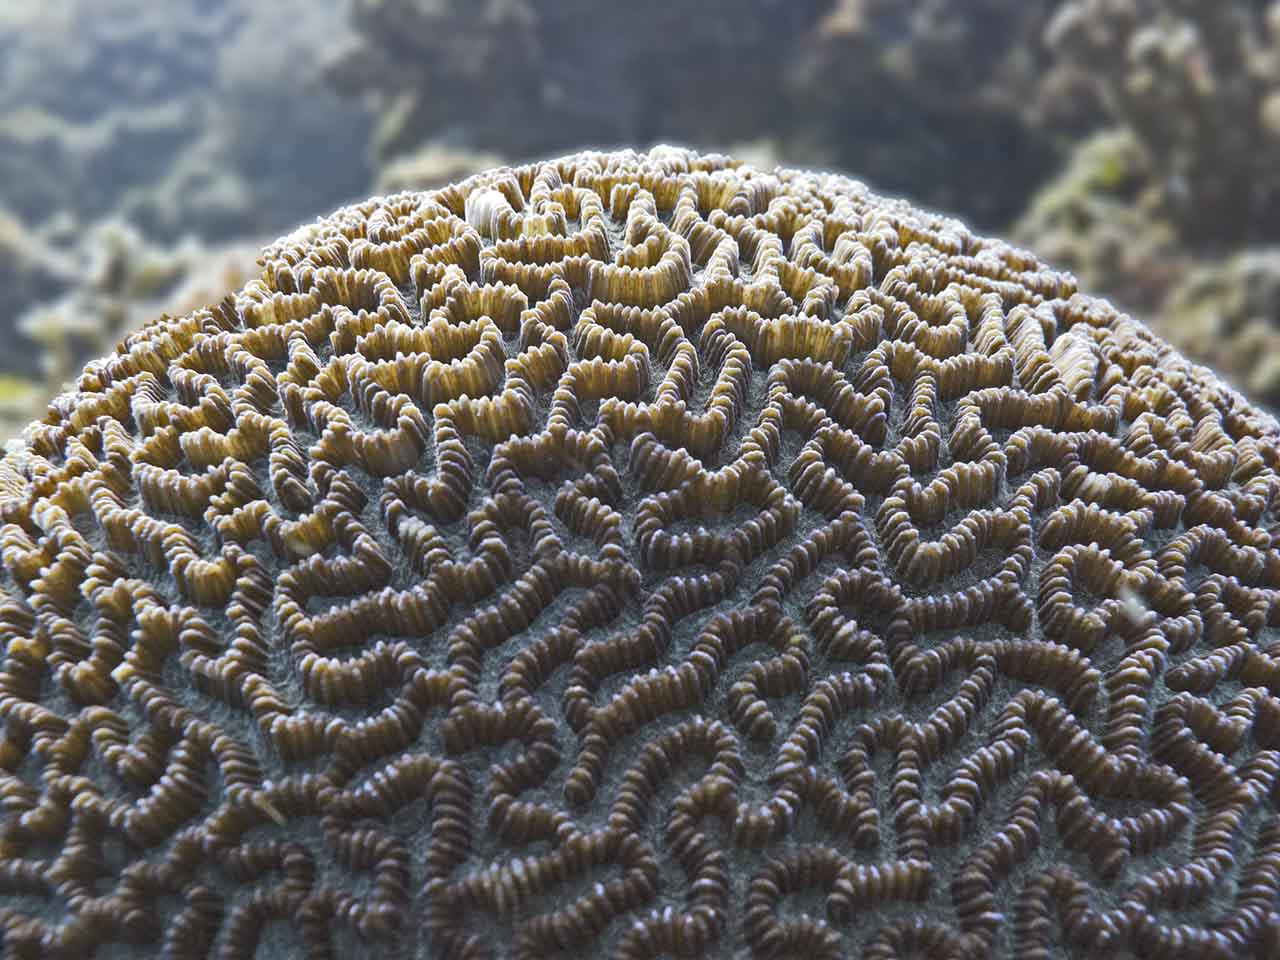 Brain Coral - not as yukky as it sounds